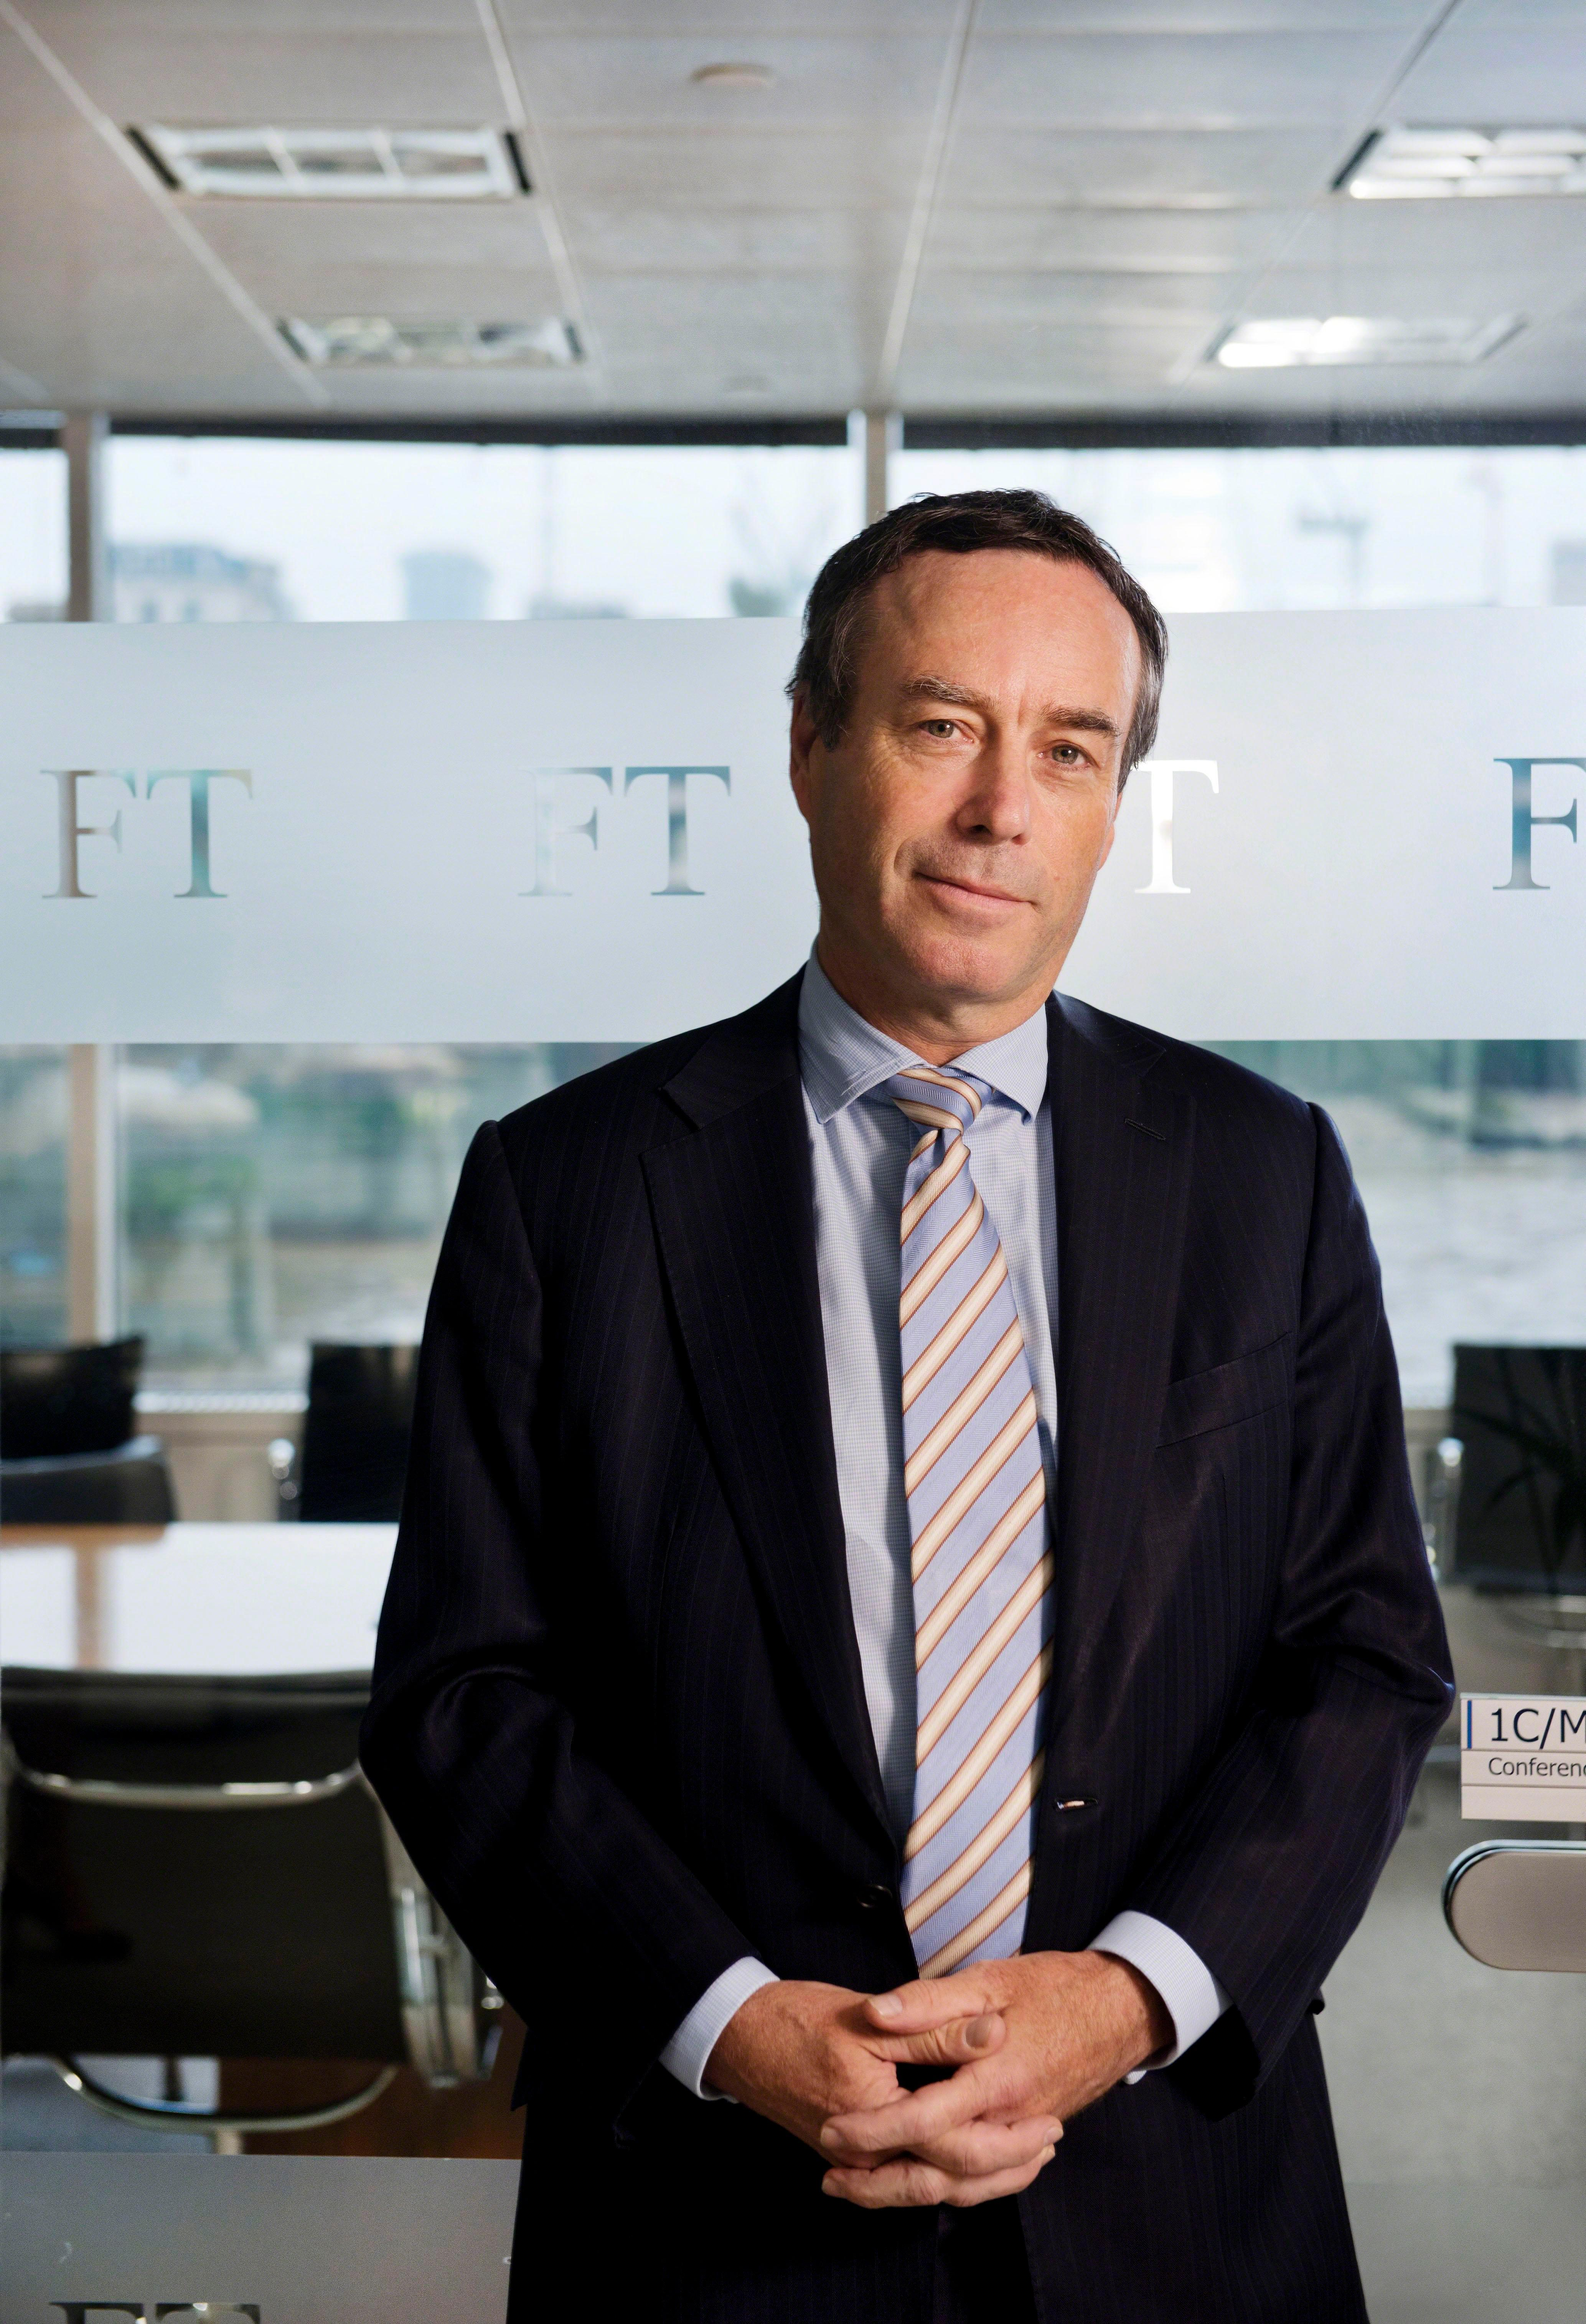 Financial Times editor Lionel Barber's Twitter account HACKED with malware messages sent to followers